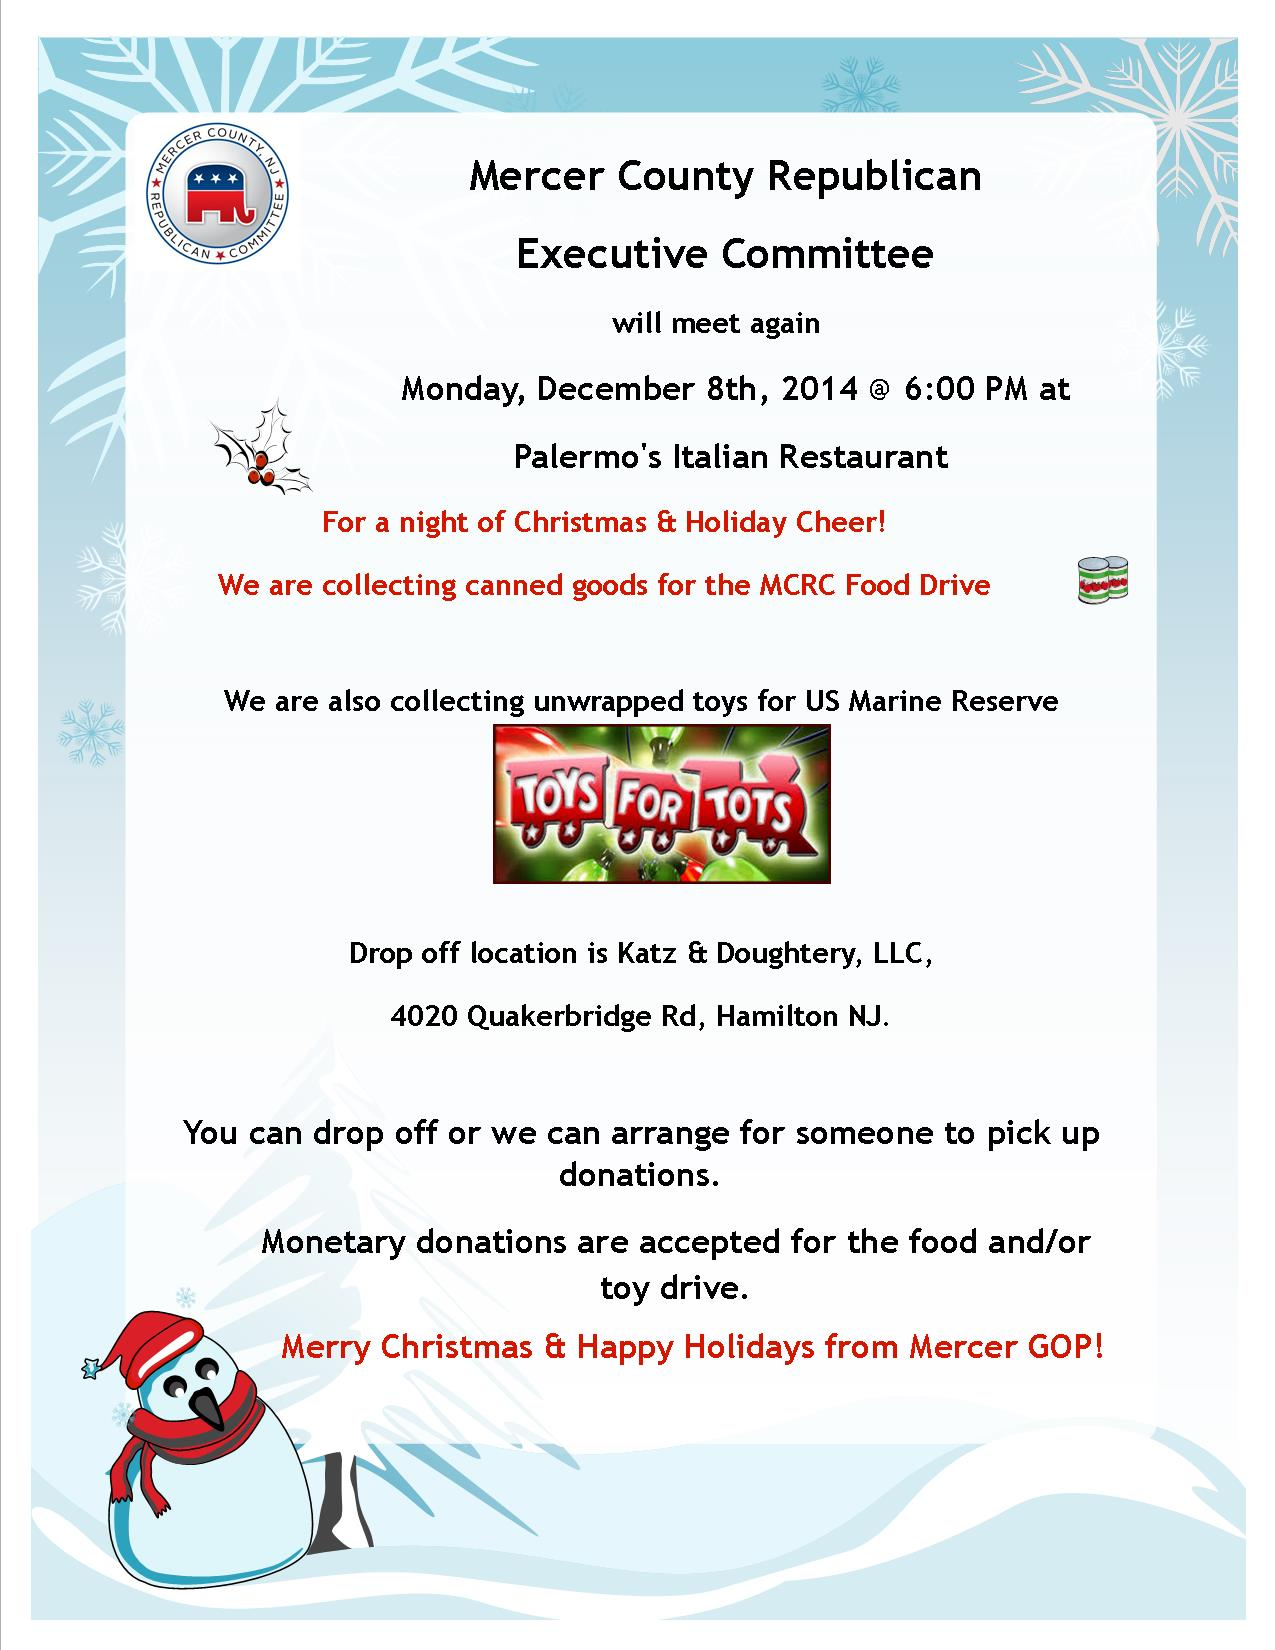 MCRC_Christmas_Meeting_Dec_8th.jpg